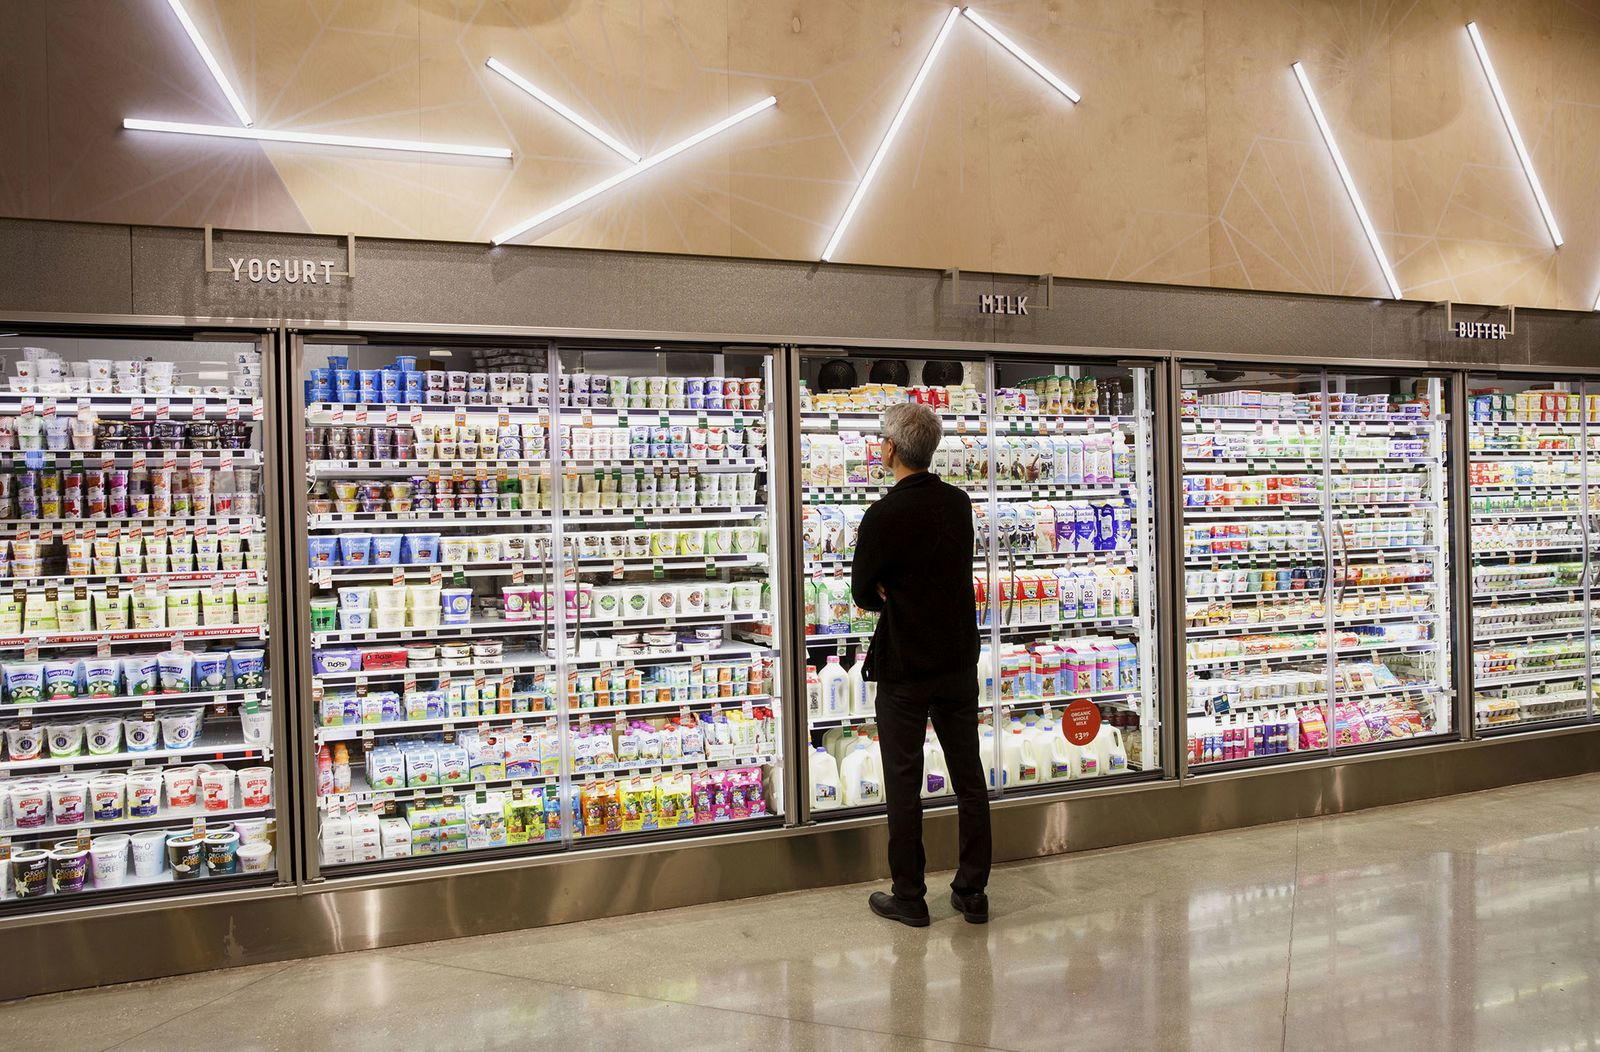 A customer browses the dairy section of grocery store in Los Angeles, Calif.